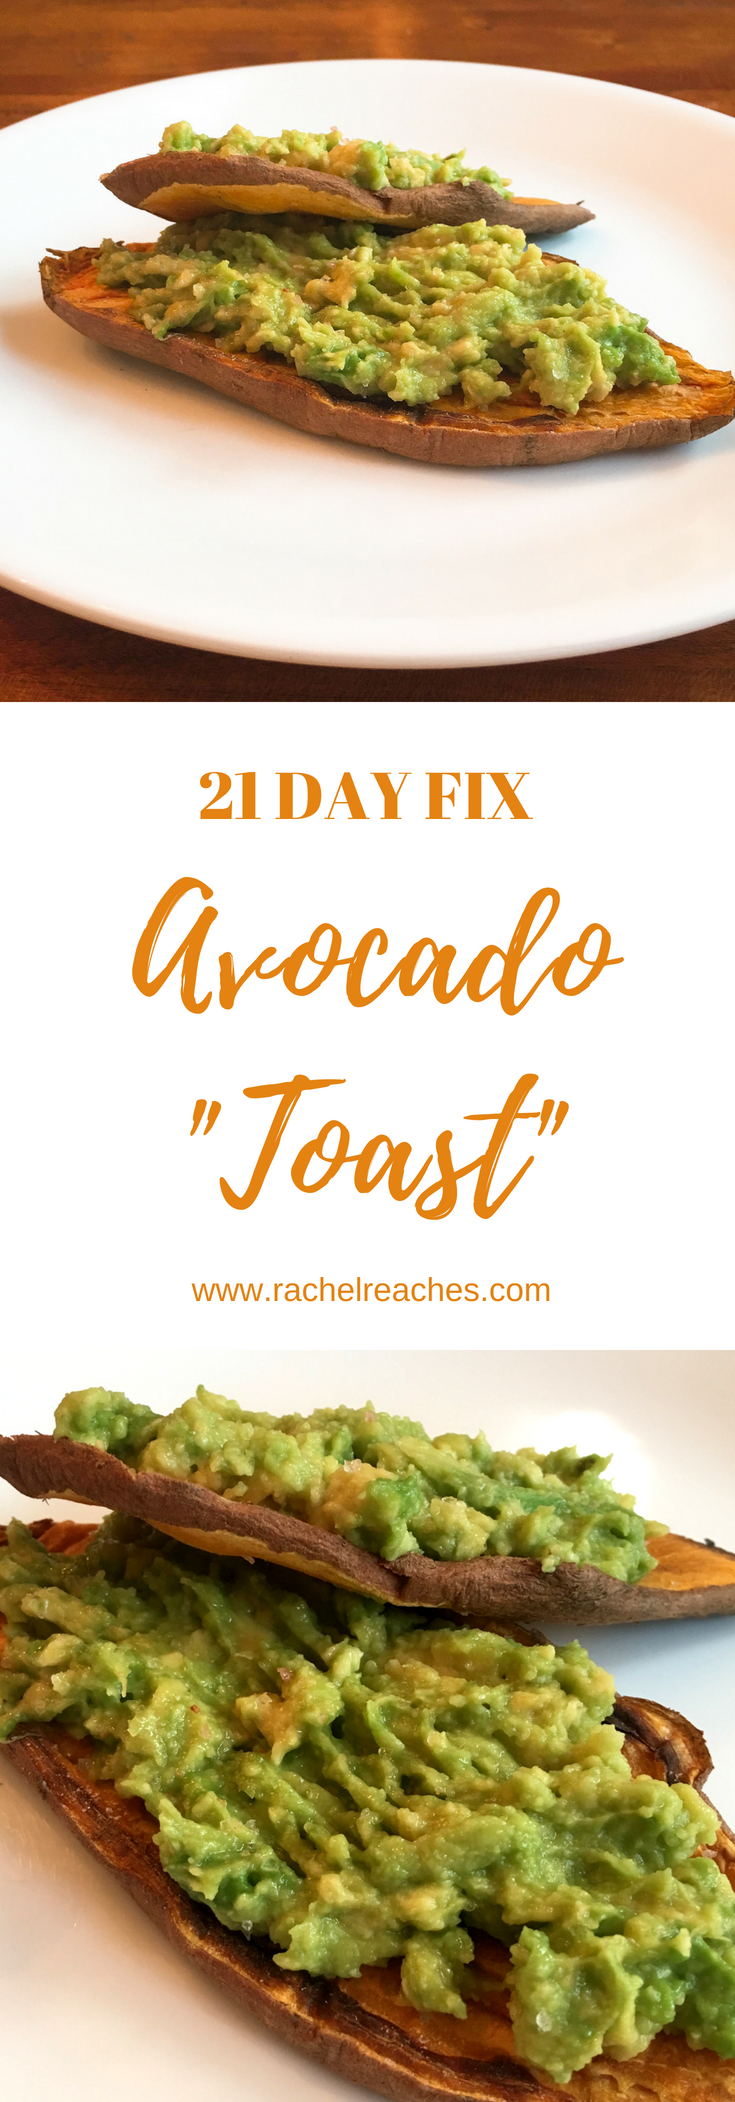 Avocado+_Toast_+Pin+-+21+Day+Fix.png